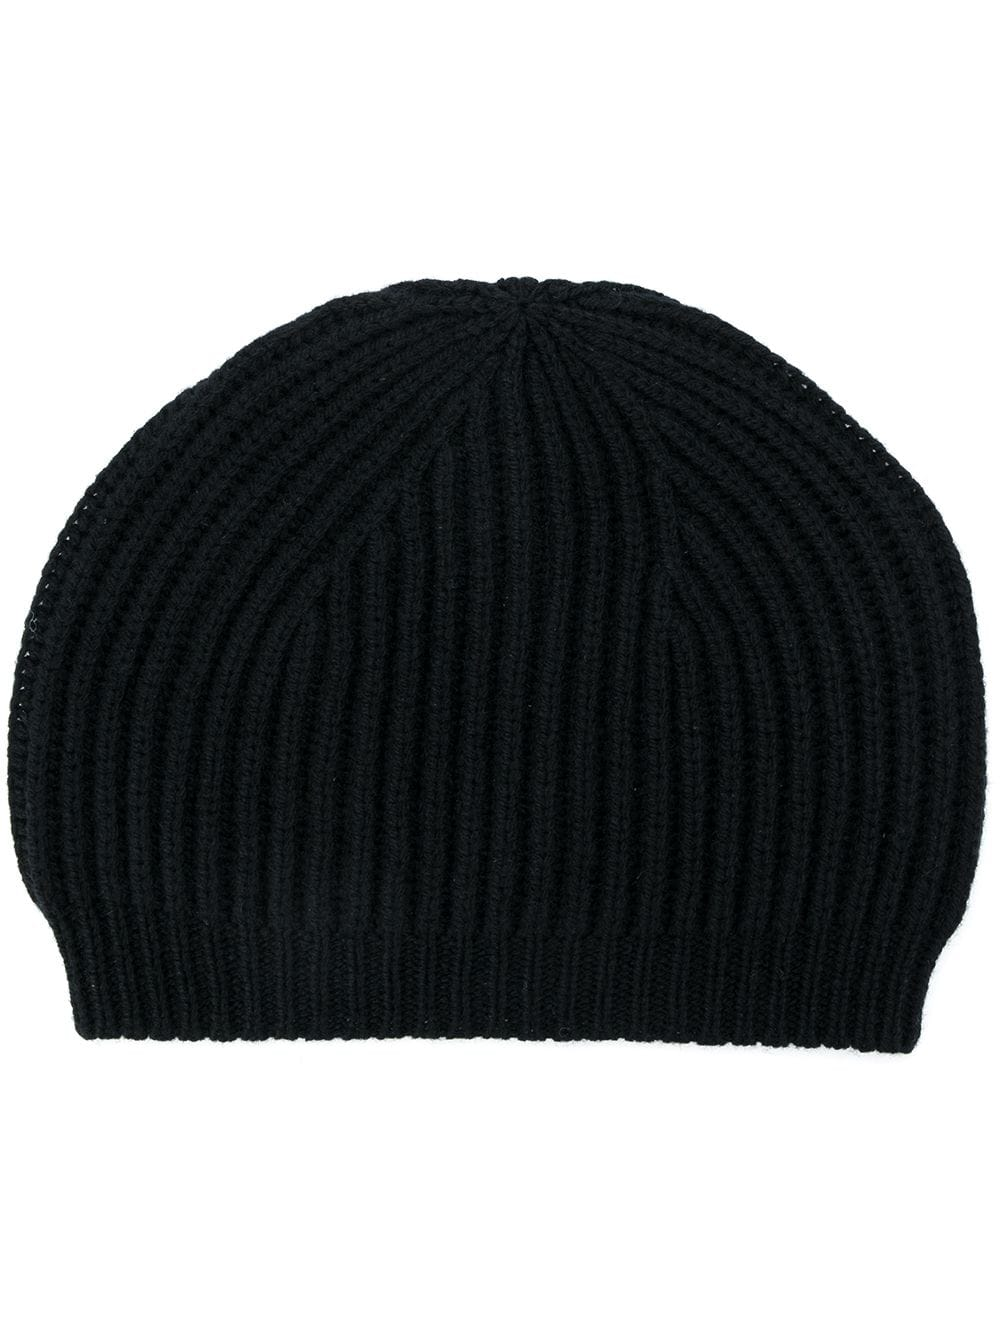 FITTED SMALL BEANIE